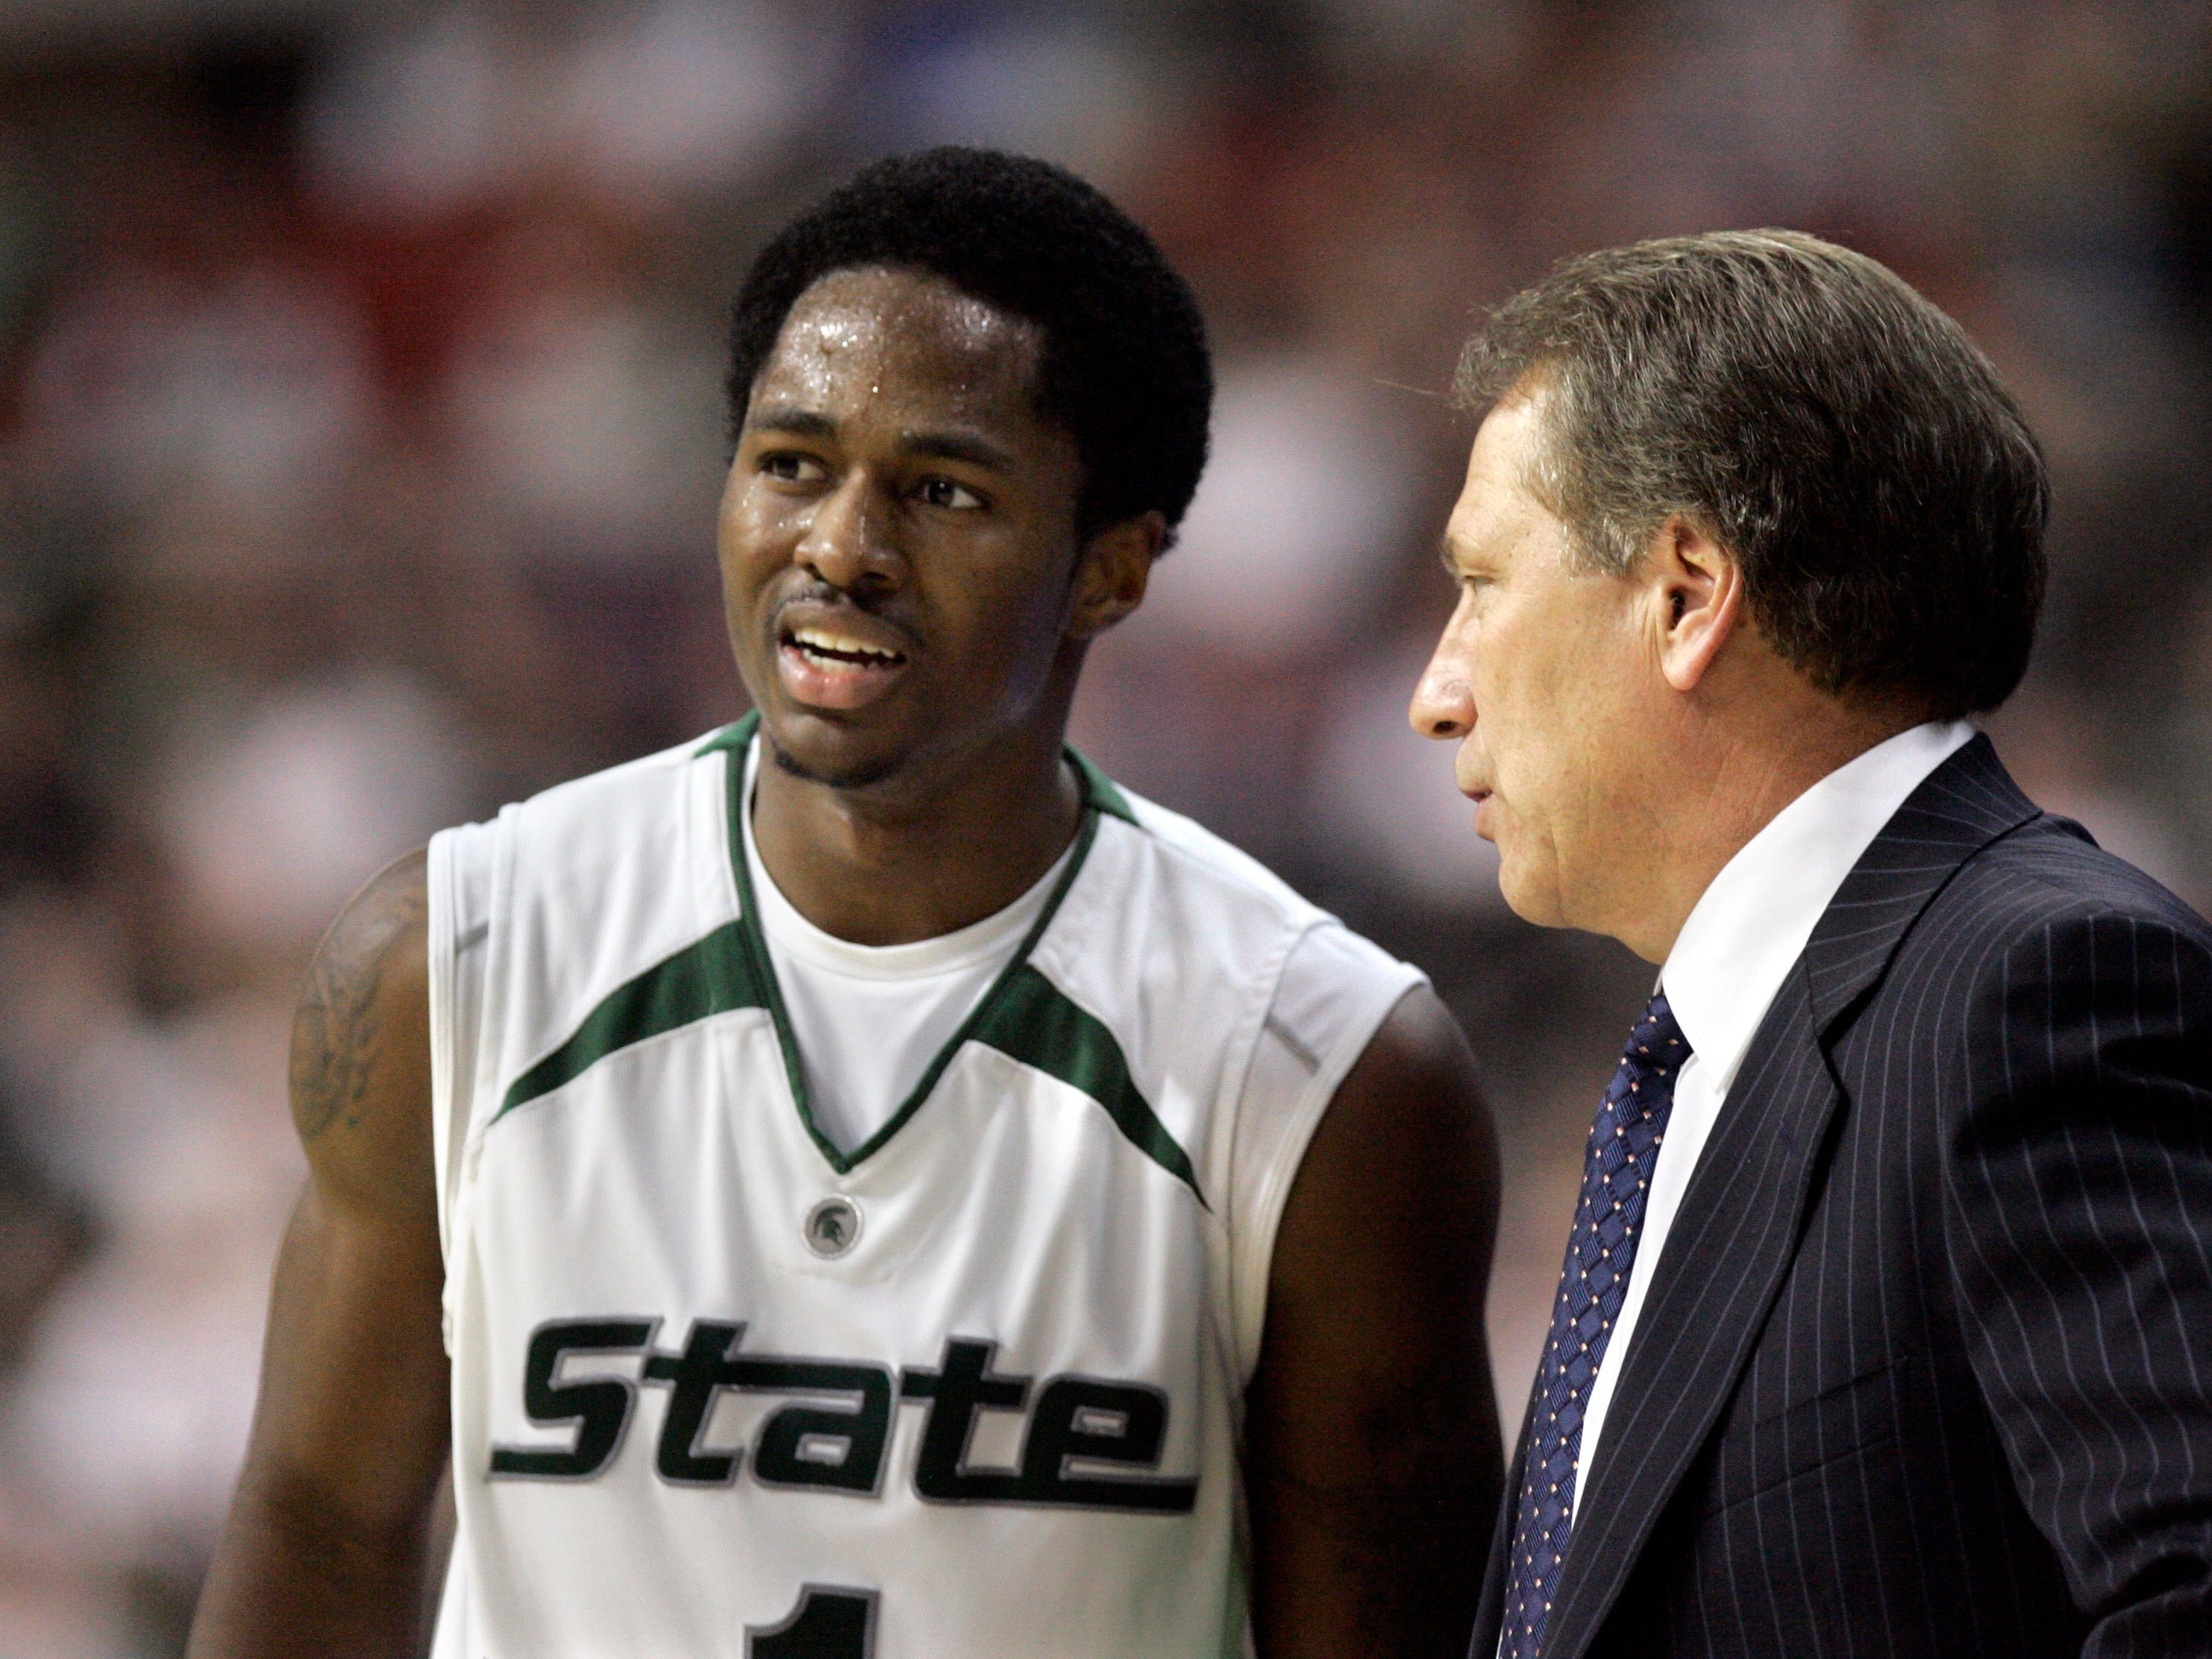 """Michigan State head basketball coach Tom Izzo talks with guard Kalin Lucas during an NCAA basketball game in Auburn Hills, Mich., in this Dec. 22, 2007 photo. Izzo says the point guard is the quickest player he's coached in 13 years as a head coach and 25 seasons on the Spartans' bench. """"It's an honor to hear him say that, especially at a program like this,"""" Lucas said Sunday, Jan. 27, 2008."""